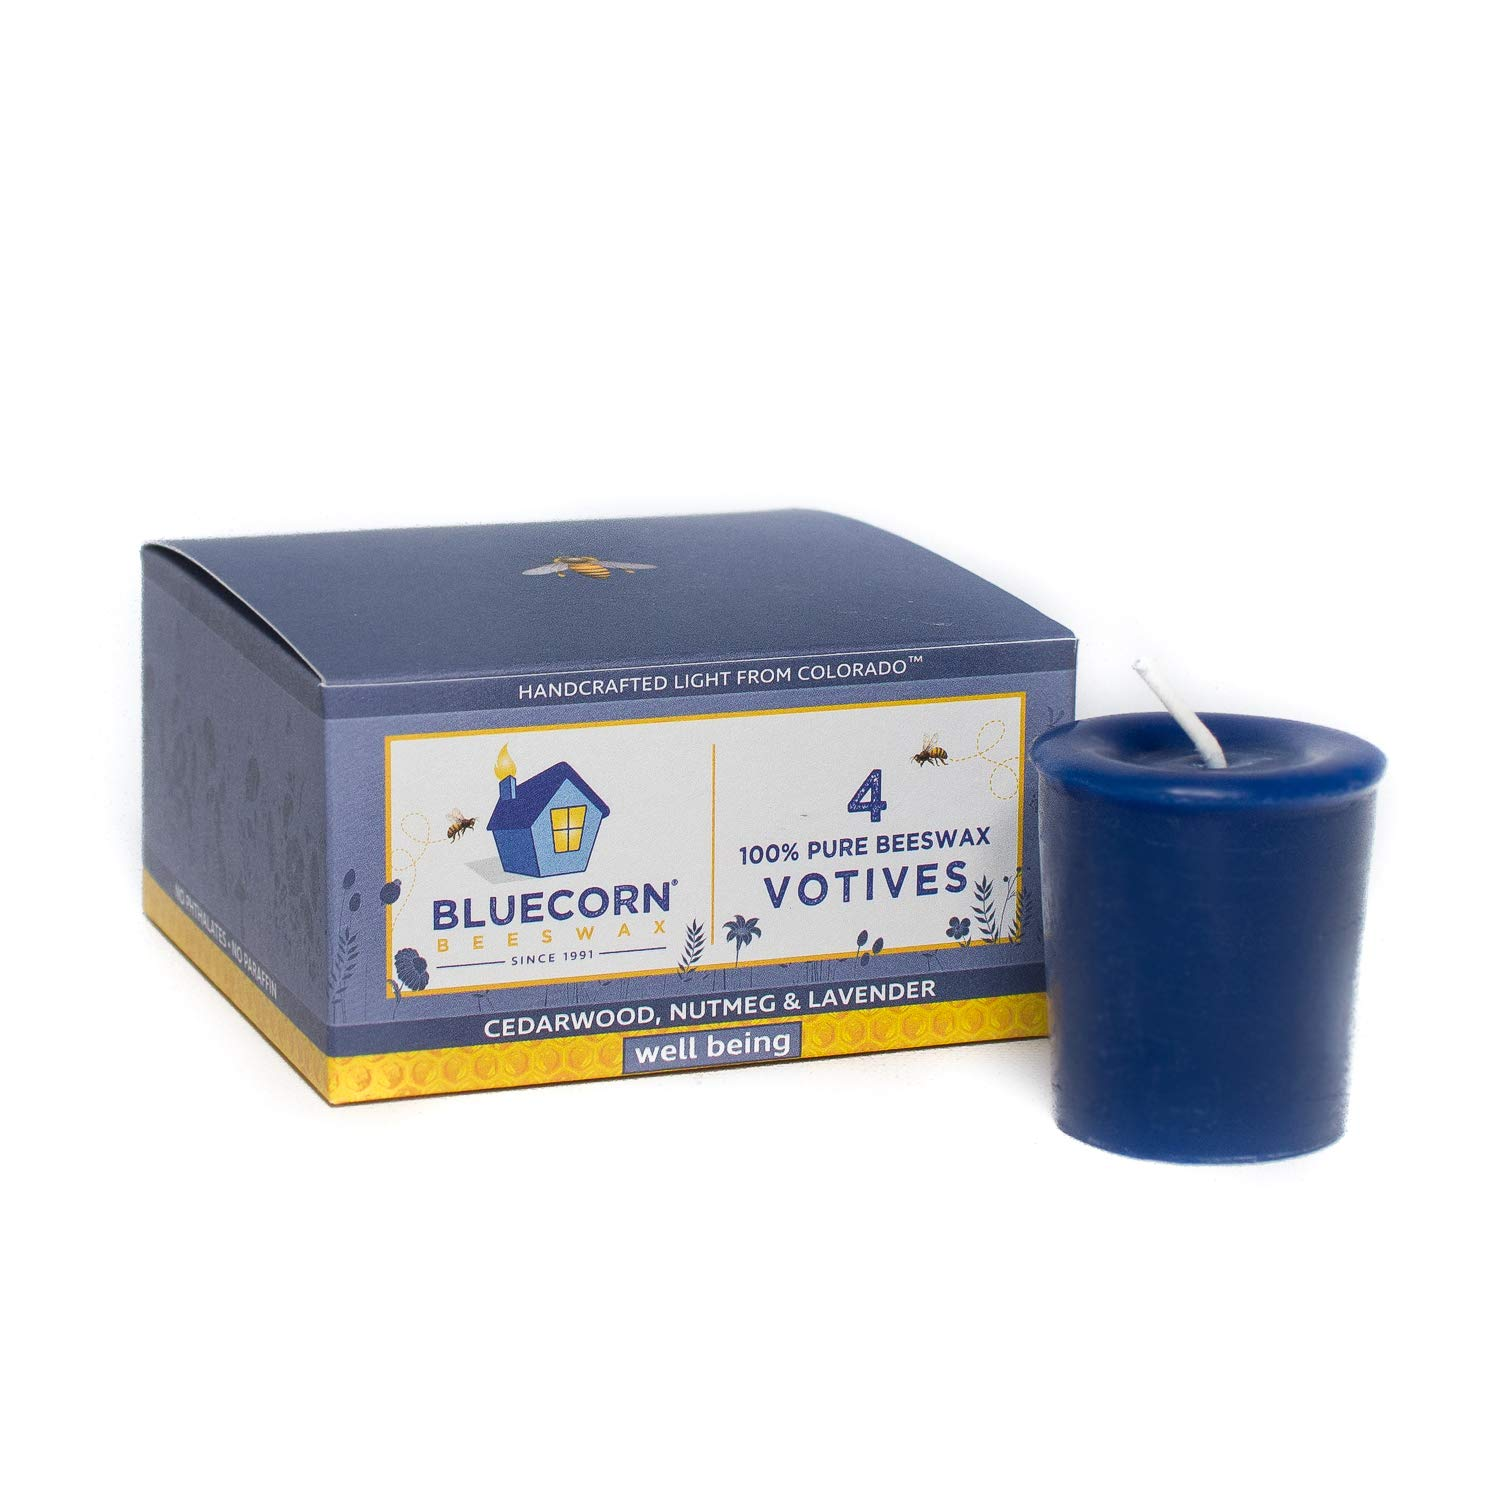 Well Being: Ylang Ylang, Cedarwood, Nutmeg /& Lavender Bluecorn Beeswax 100/% Pure Beeswax Aromatherapy Votives 4-Pack